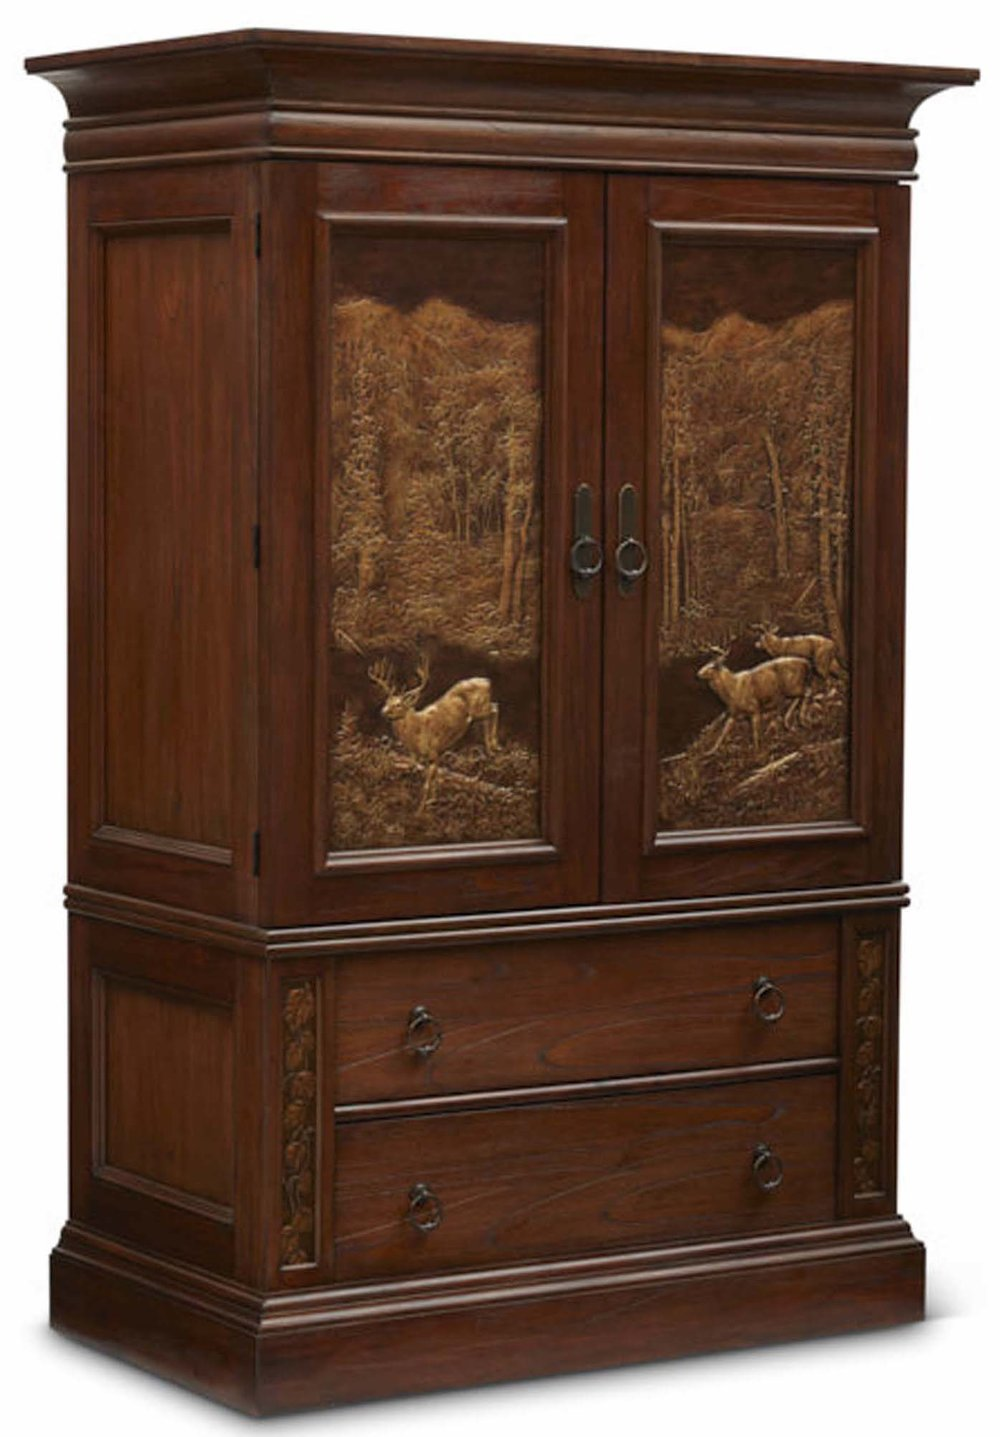 "Aspen Armoire with Hidden Gun Cabinet  Item # DI-167403 (G / LB / DB) Dimensions: 52 x 28.375 x 79-3/8""H"